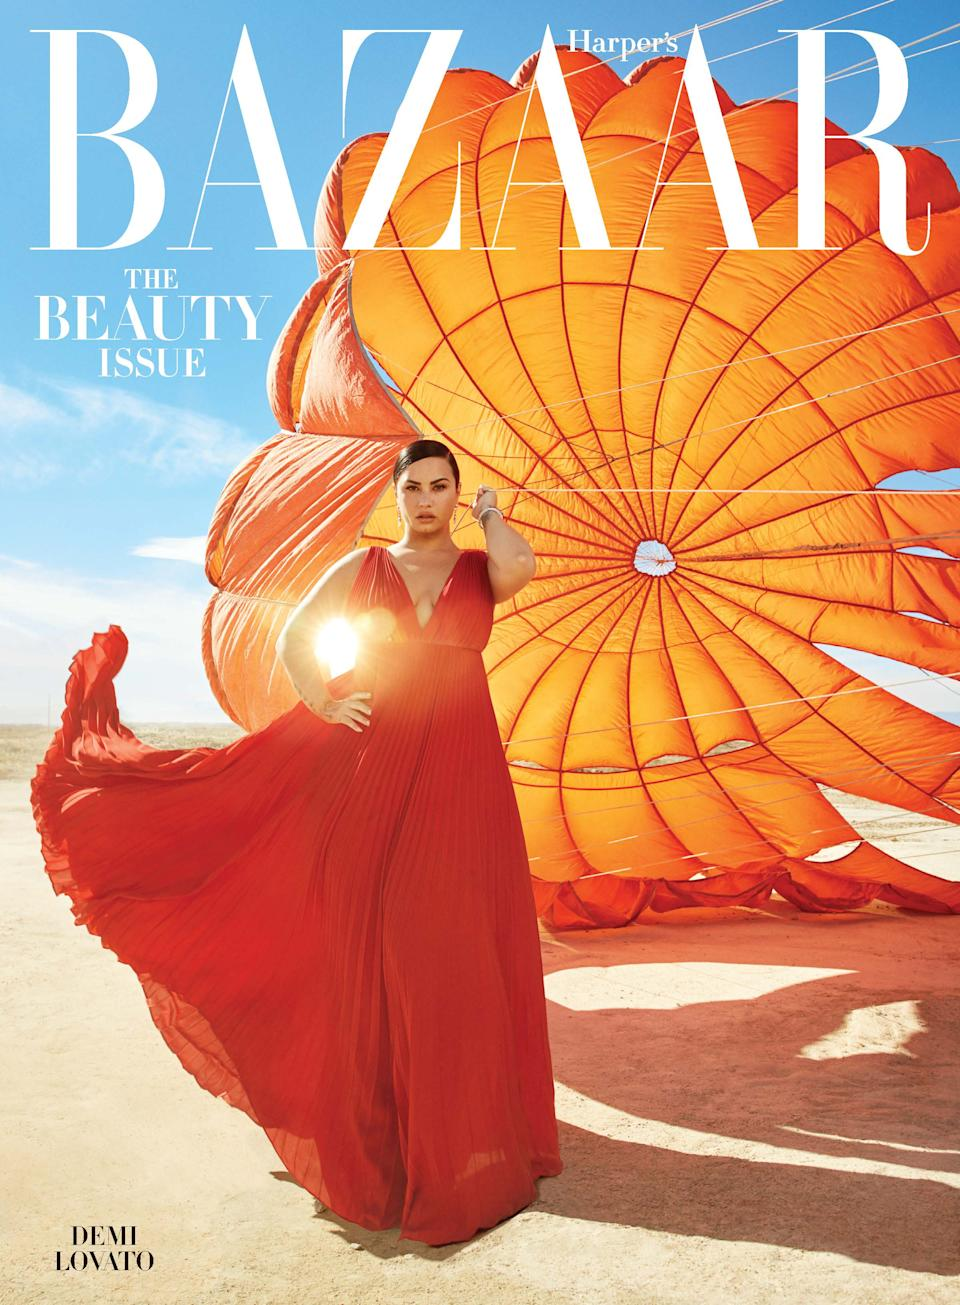 Demi Lovato opens up about her relationships and personal struggles in the May issue of Harper's Bazaar. (Photo: Alexi Lubomirski/Harper's Bazaar)